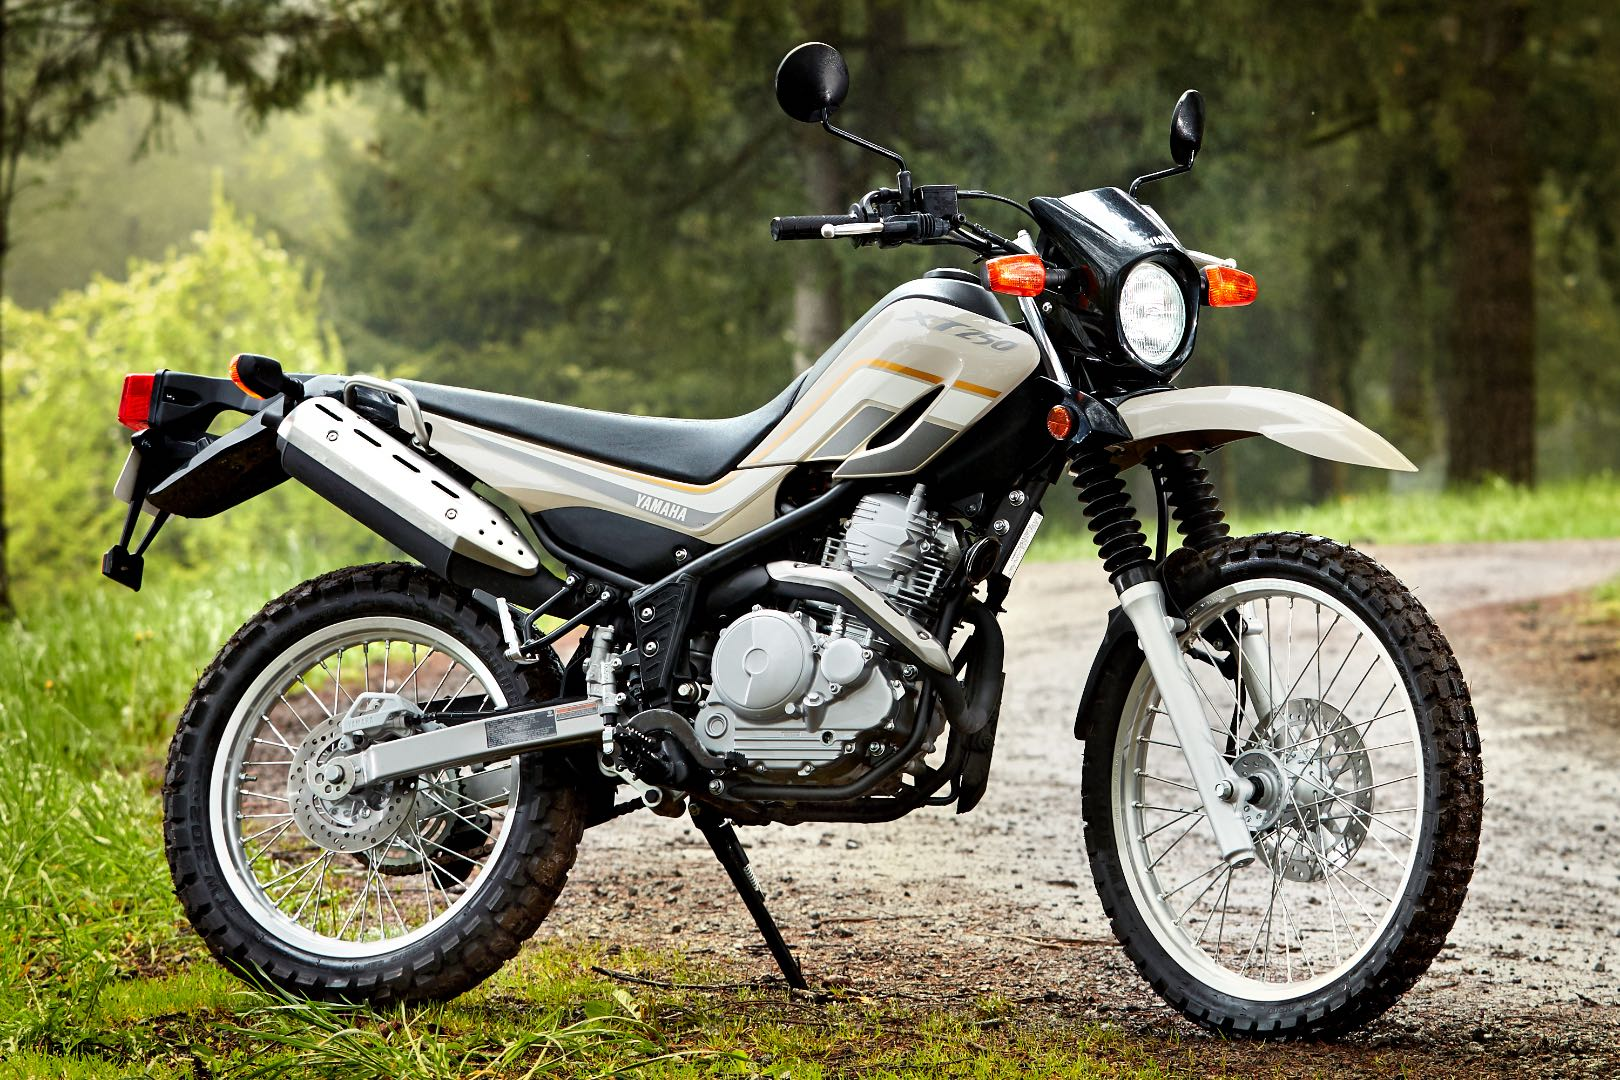 2018 yamaha xt250 buyer 39 s guide specs price. Black Bedroom Furniture Sets. Home Design Ideas